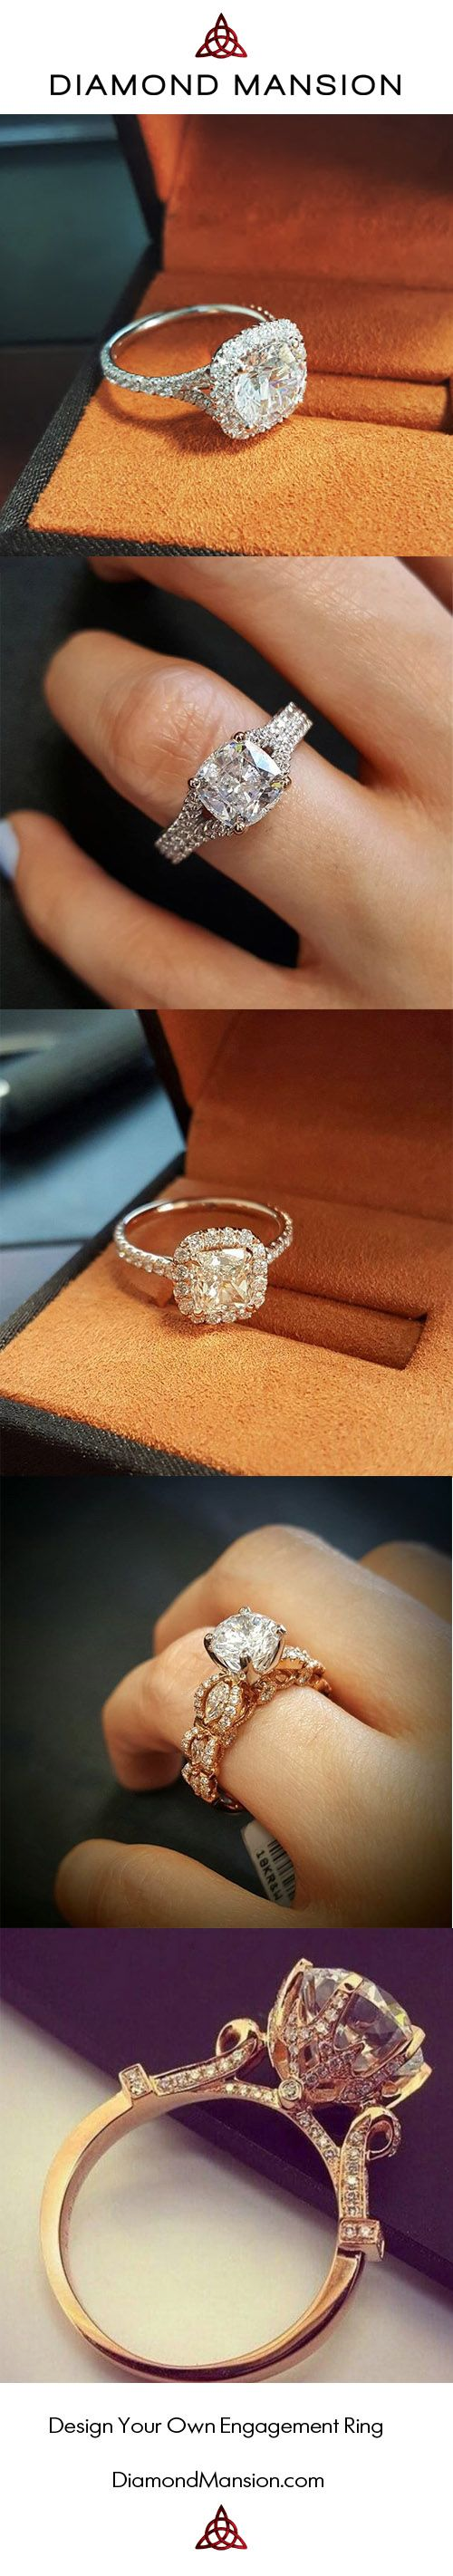 Design Your Own Engagement Ring at Diamond Mansion. Start Designing by Selecting From The Largest Selection of Engagement Ring Style. #Design #YourOwn #EngagementRing #DesignYourOwnEngagementRing http://www.DiamondMansion.com